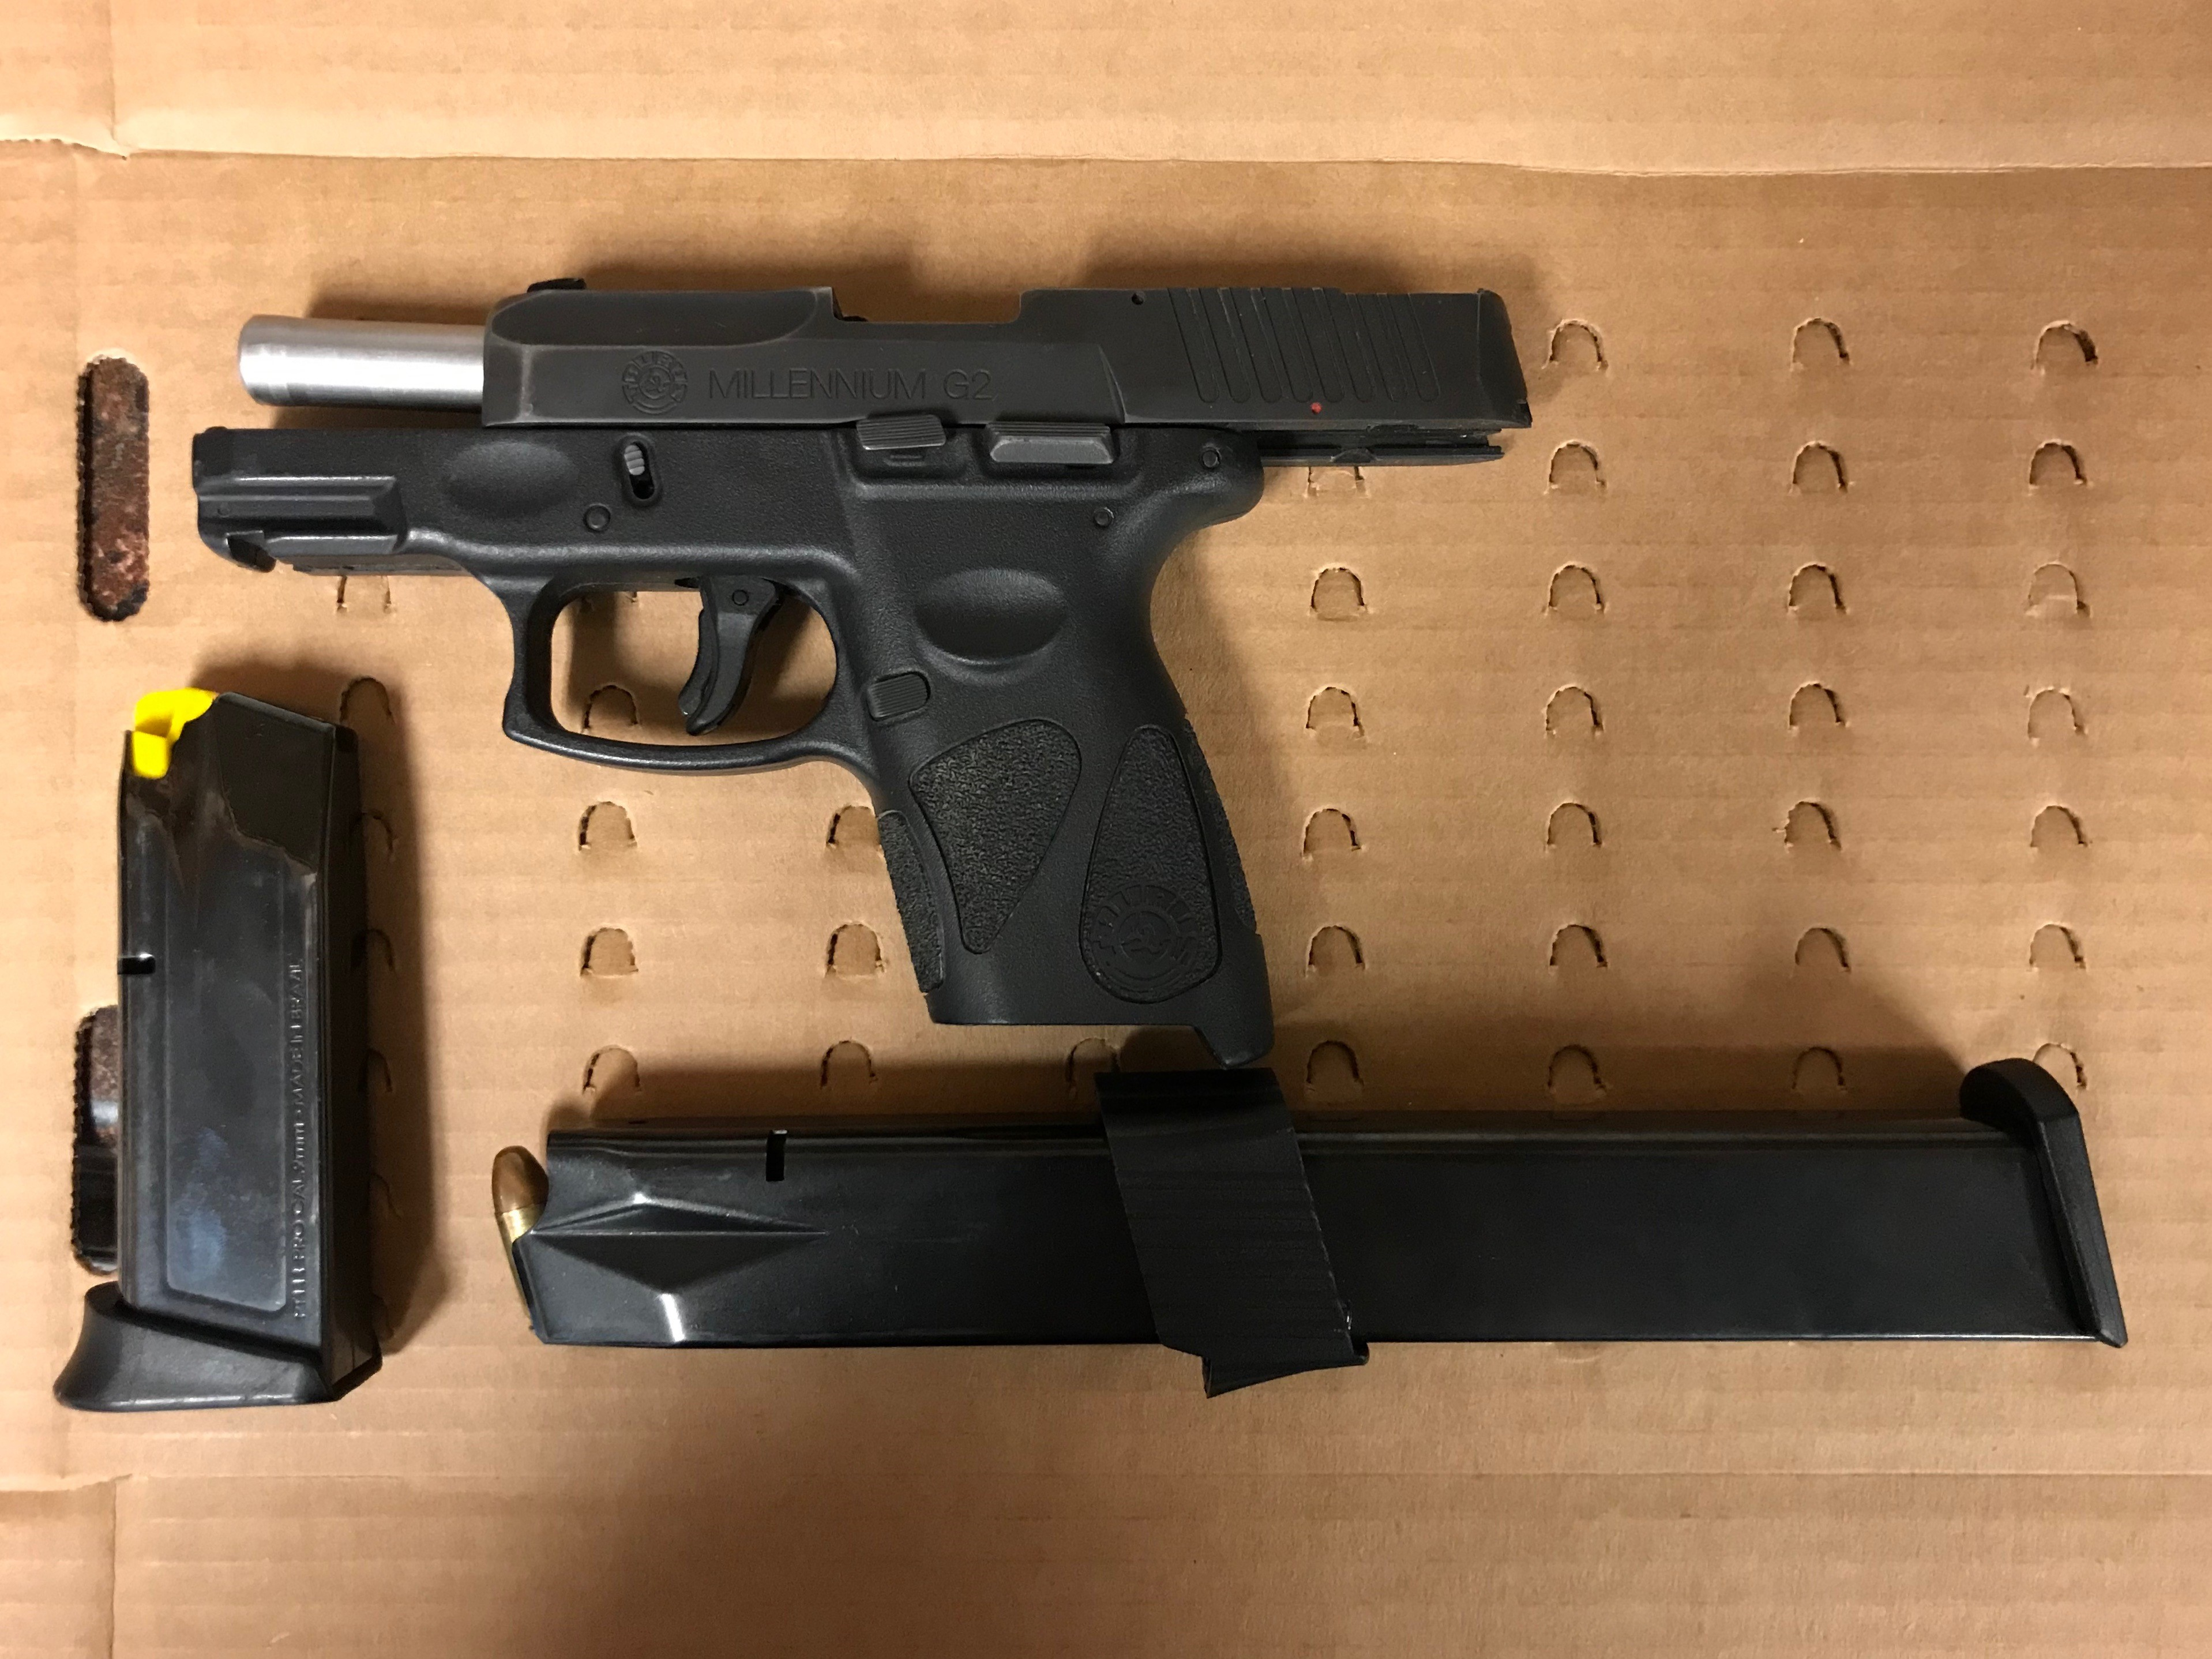 A semi-automatic handgun with a defaced serial number was seized from New York man wanted on a warrant for bail jumping and gun and drug charges when he was arrested Jan. 16, 2020, in Waukegan.